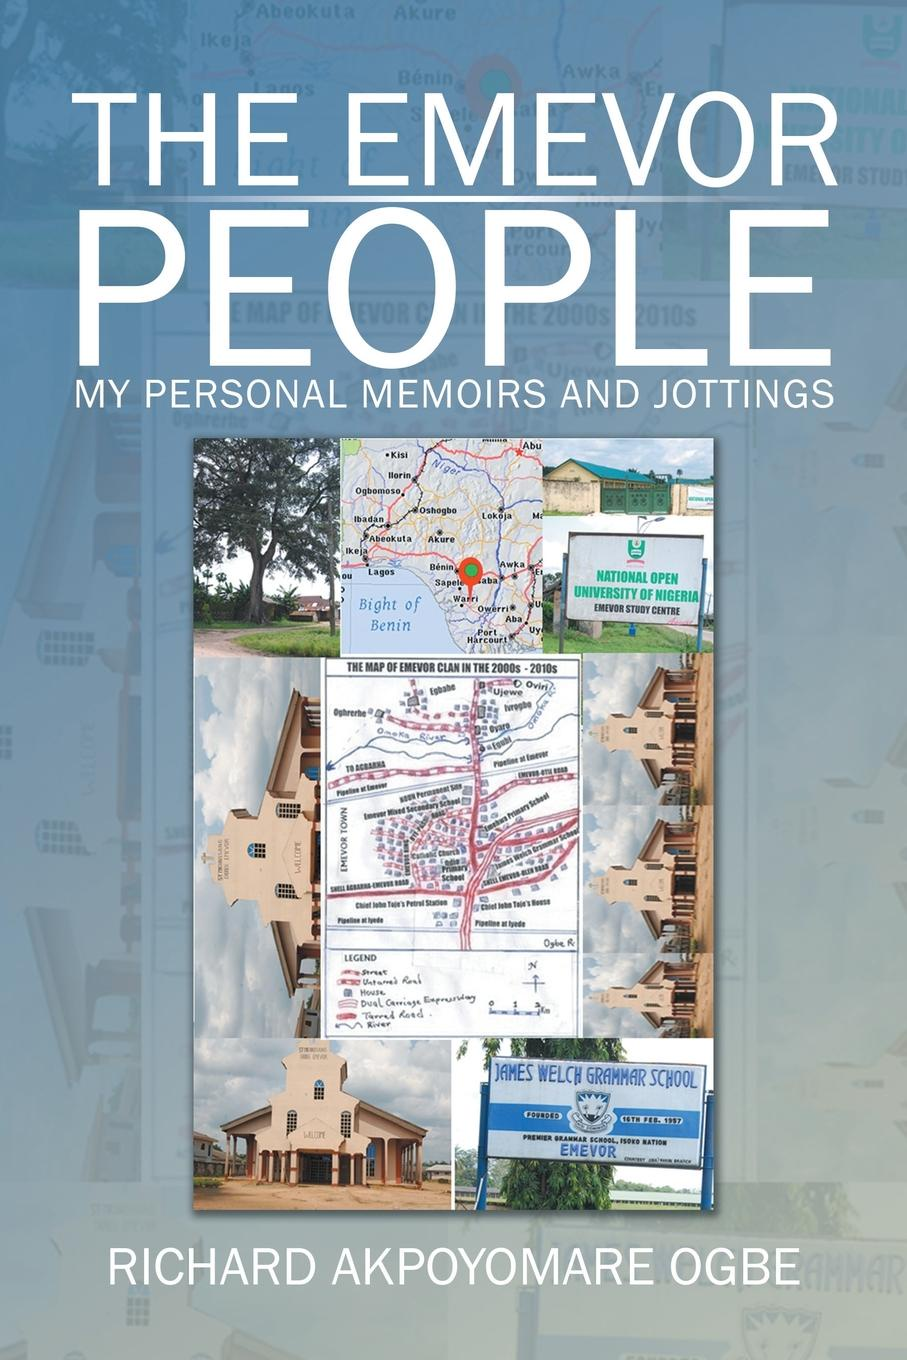 Richard Akpoyomare Ogbe The Emevor People. My Personal Memoirs and Jottings